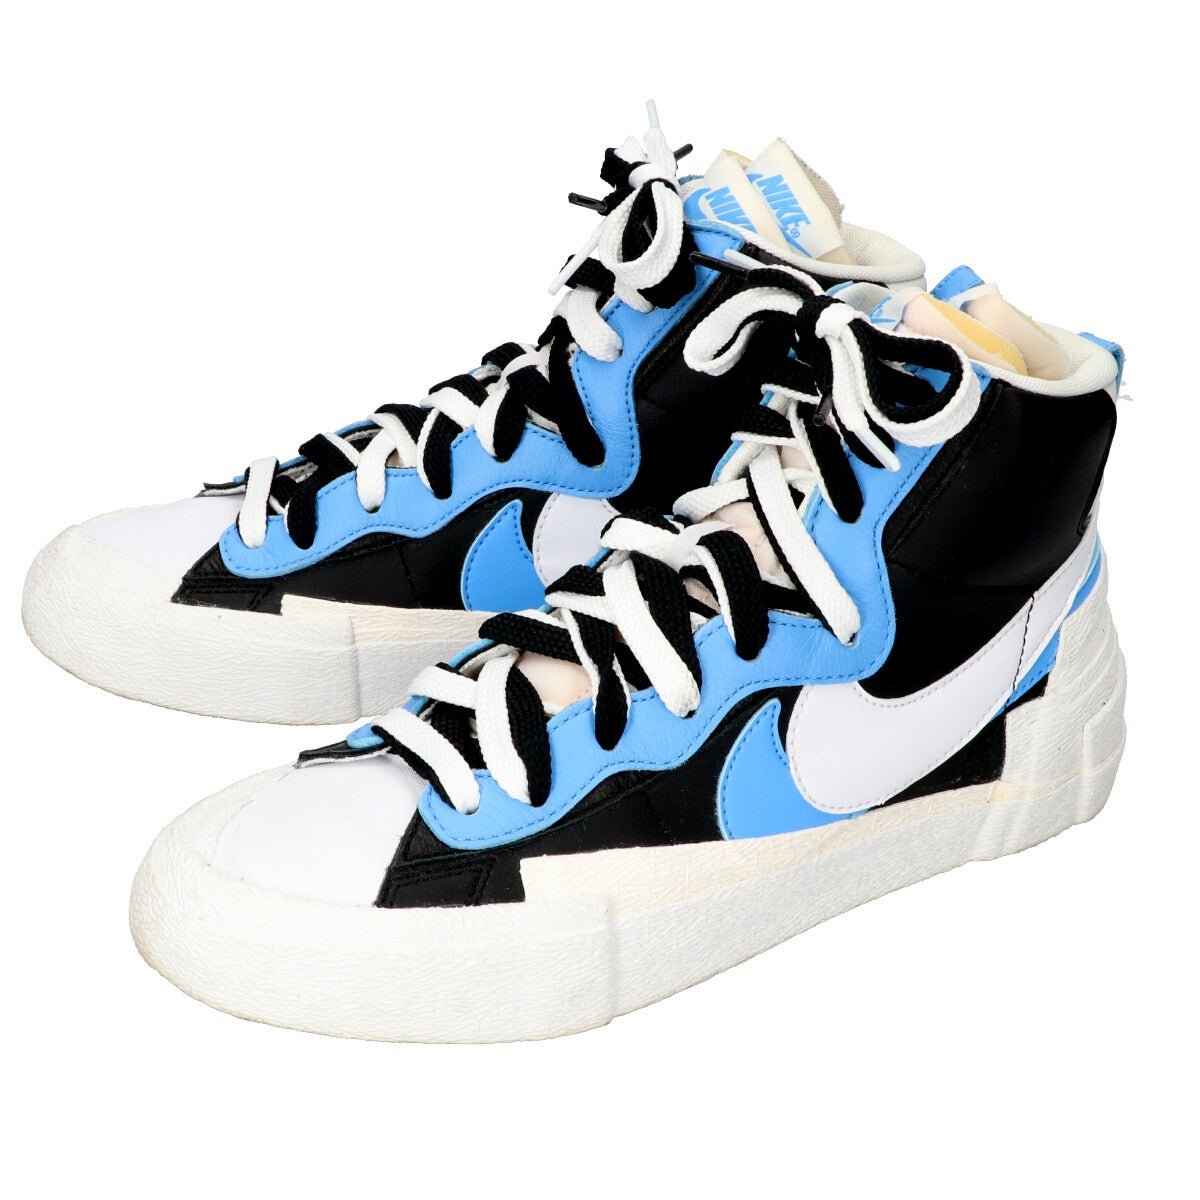 ナイキの×SACAI BV0072-001 BLAZER MID 25cm BLACK/WHITE-UNIVERSITY BLUEの買取実績です。